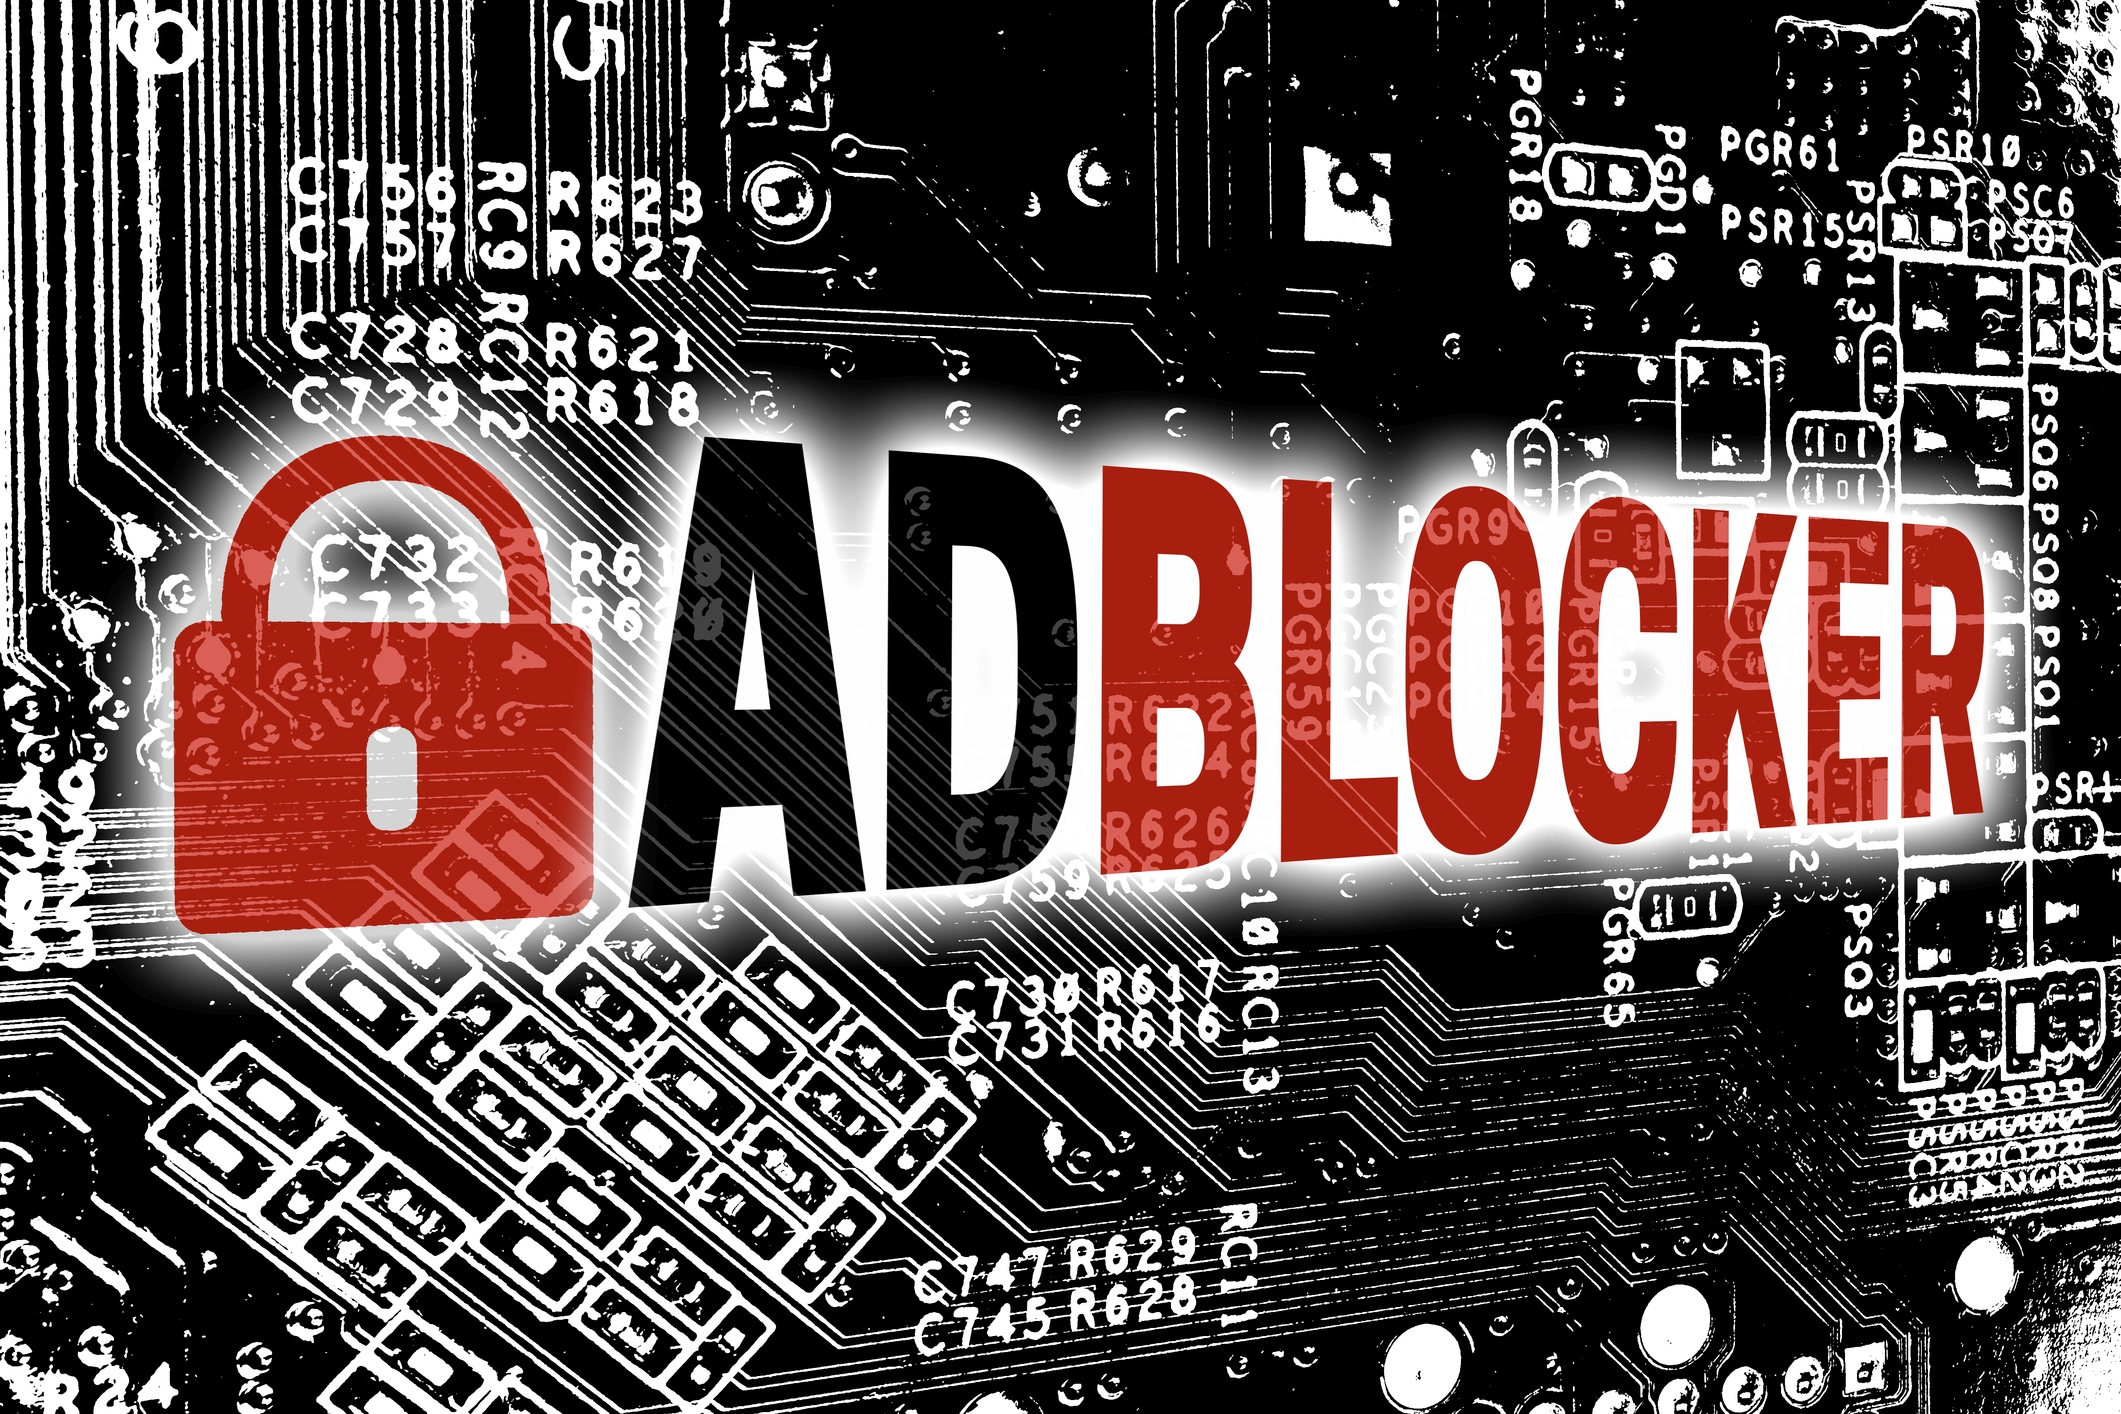 Bone of contention for decades: ad blockers